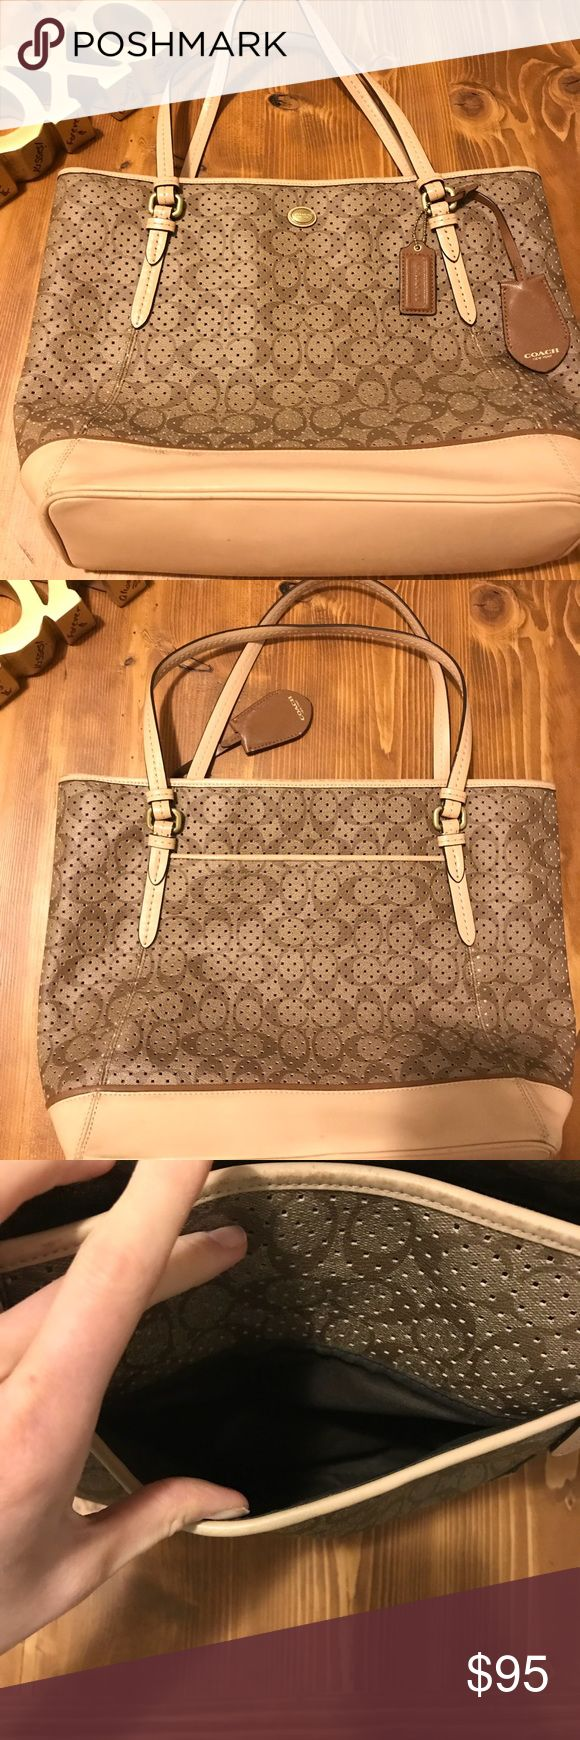 Authentic Coach Tote❤️❤️ Authentic Coach Tote Bag! Great condition! Minor scuffs on bottom shown in picture. Perfect Spring 💐 tote! Coach Bags Totes